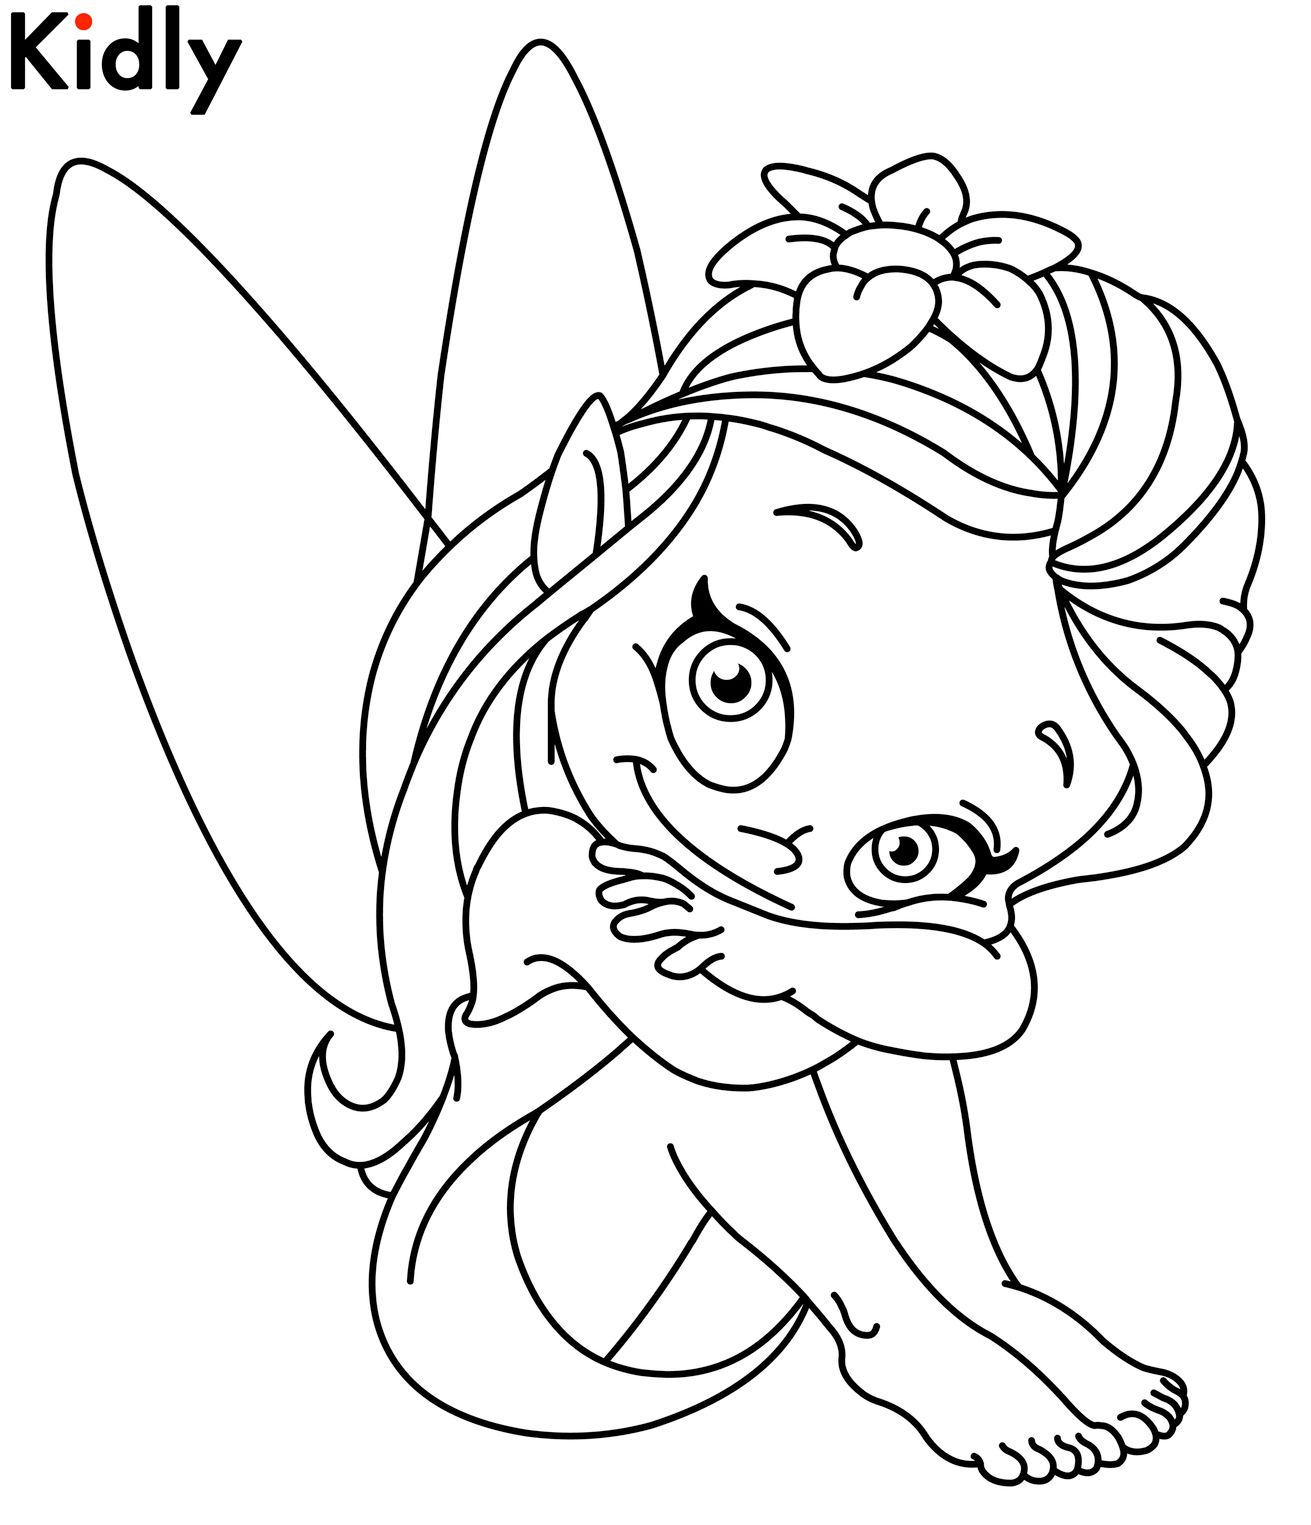 Uncategorized Pictures Of Fairies To Color coloring pages for adults difficult fairies kidly printable printable